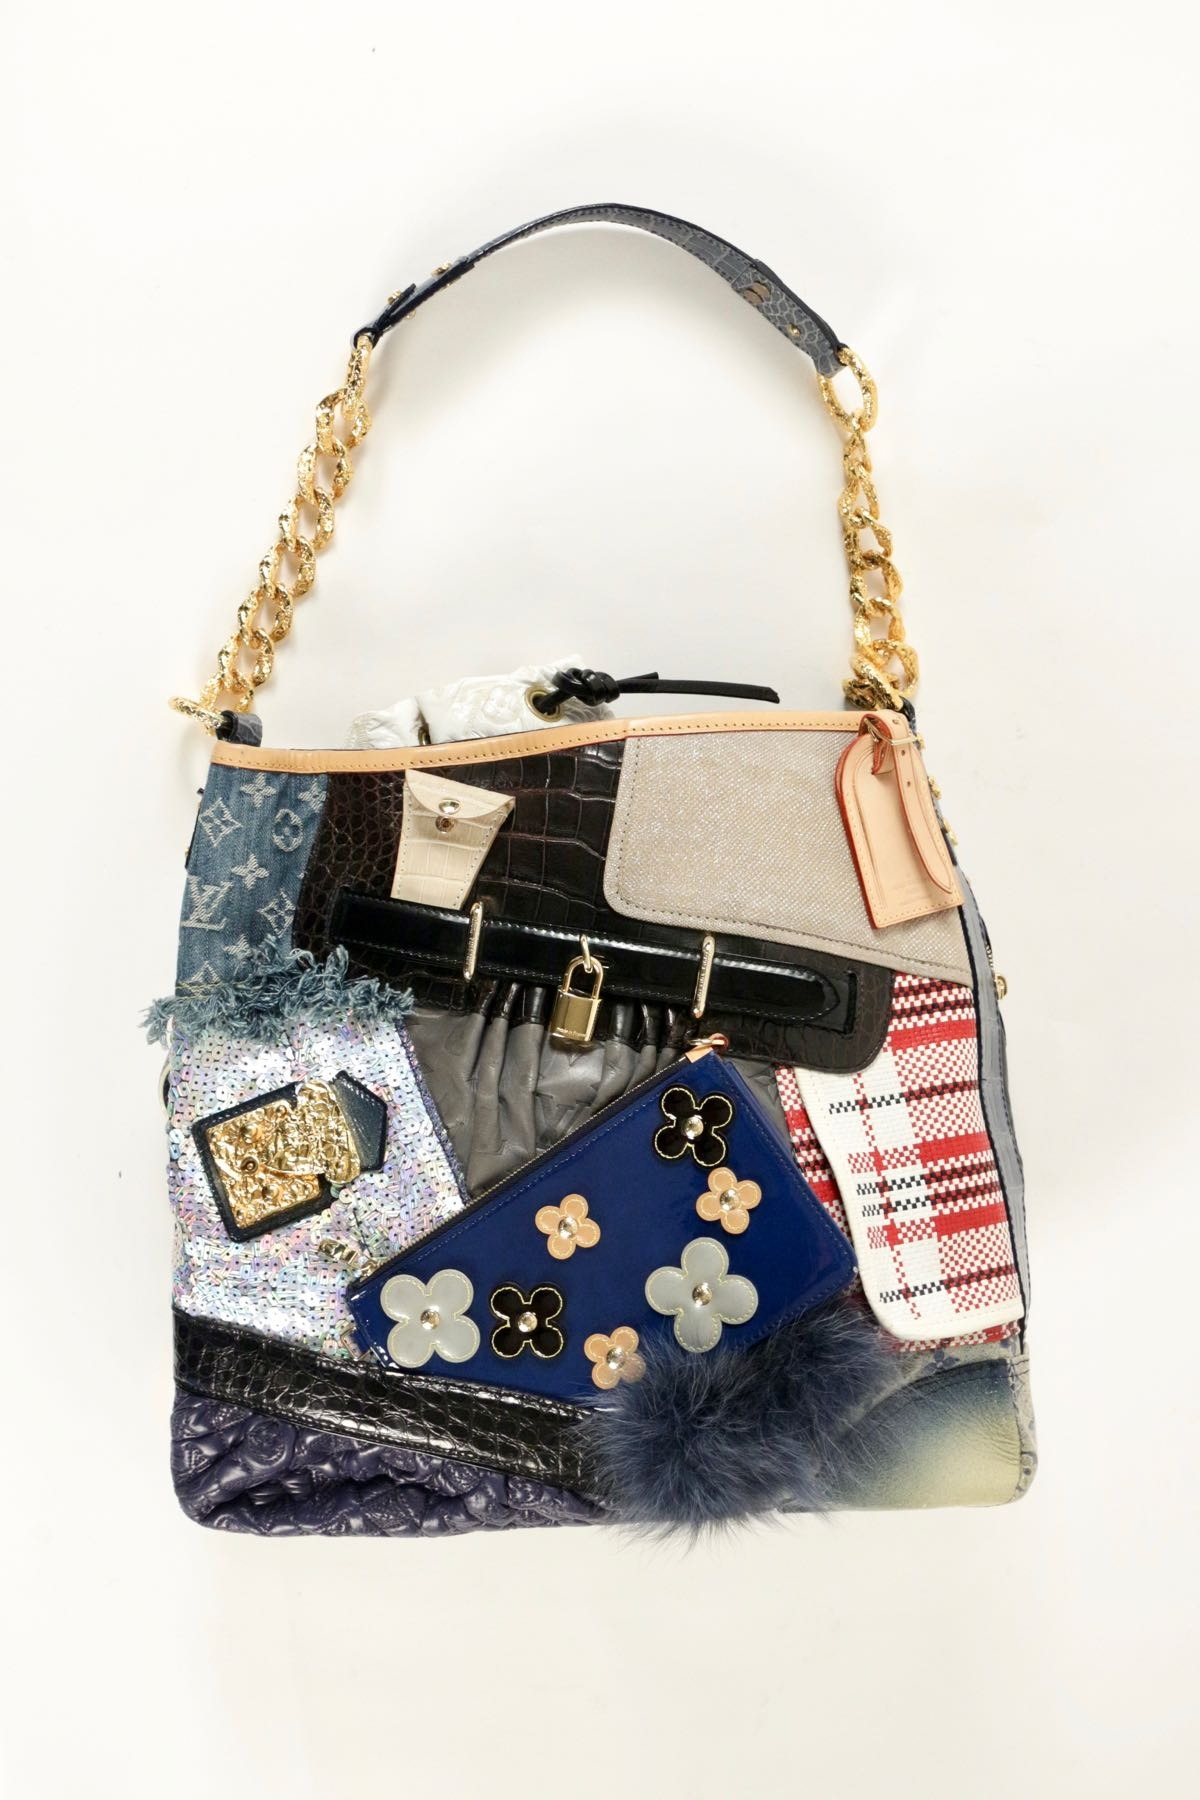 bc1f84d5bbc6 Must Have Louis Vuitton Tribute Patchwork Bag Fakes Available Too ...